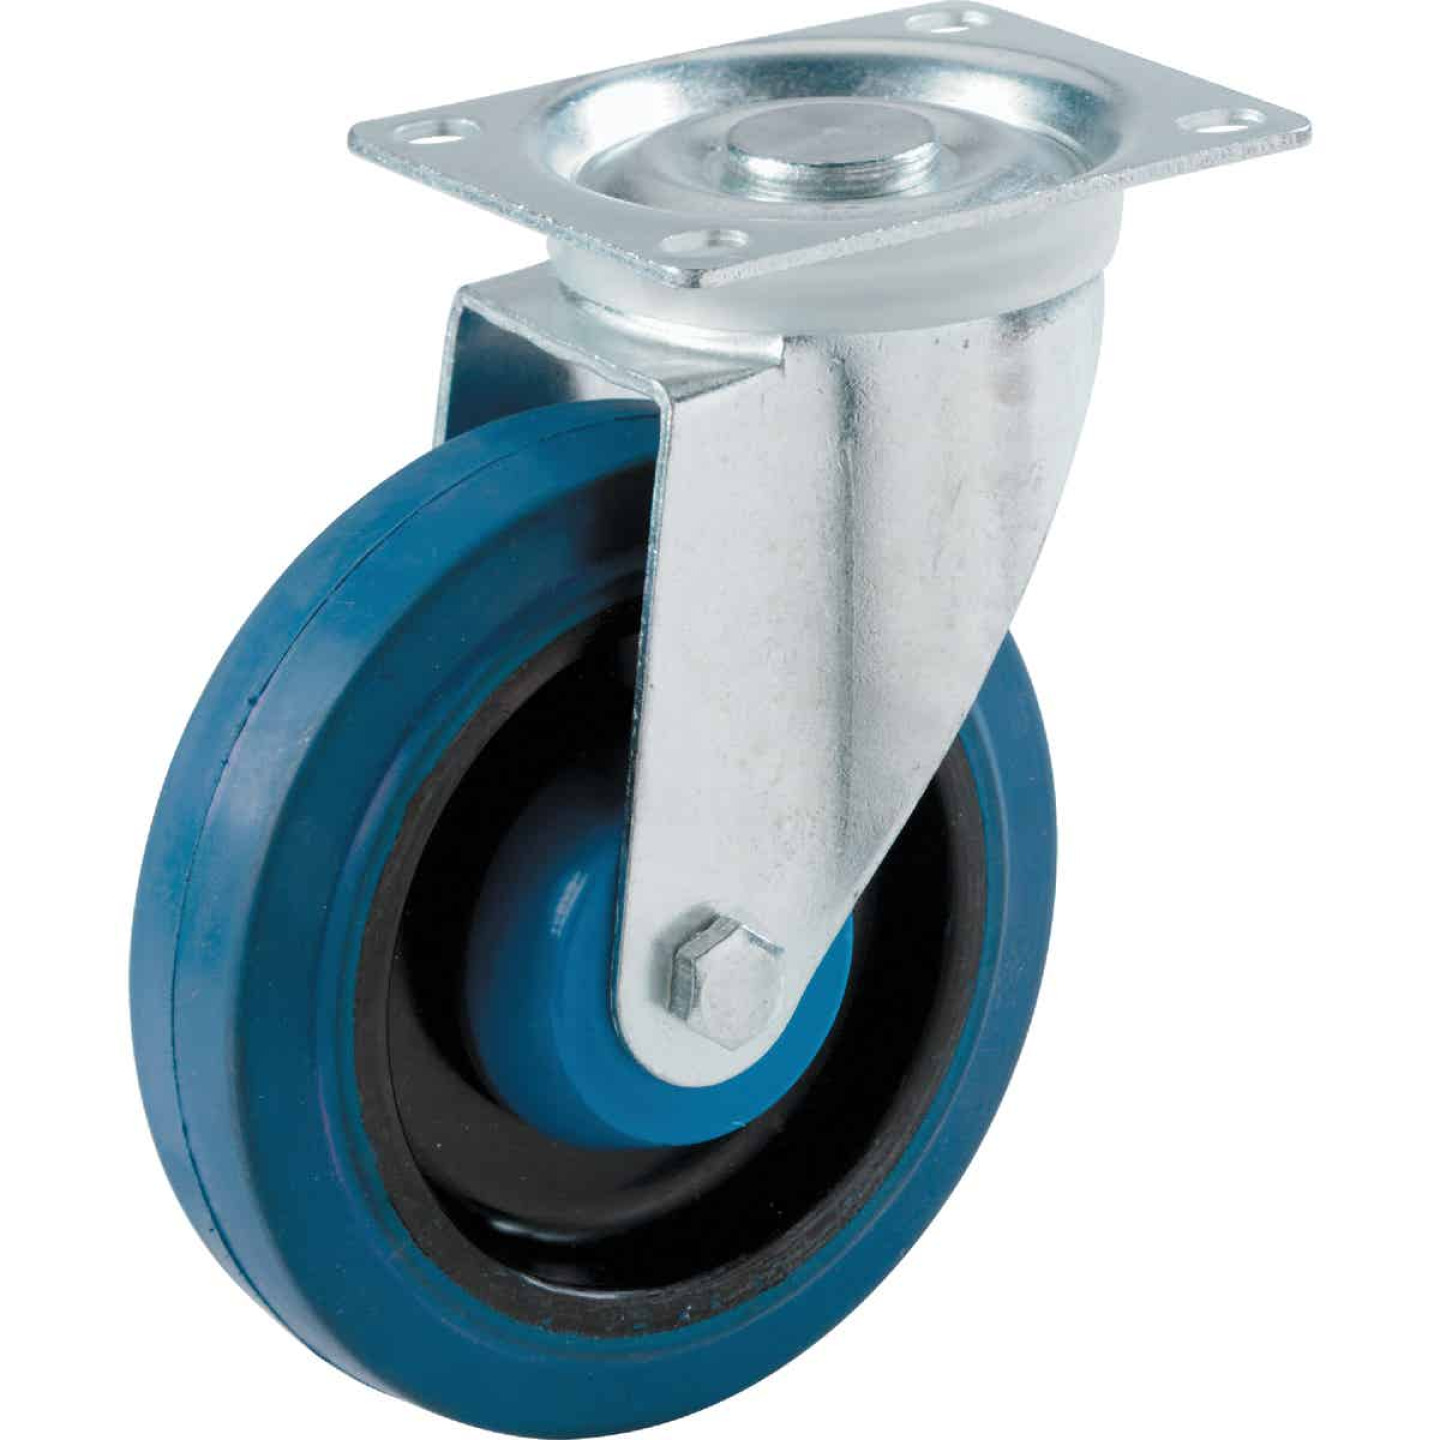 Shepherd 4 In. Elastic Rubber General-Duty Swivel Plate Caster Image 1